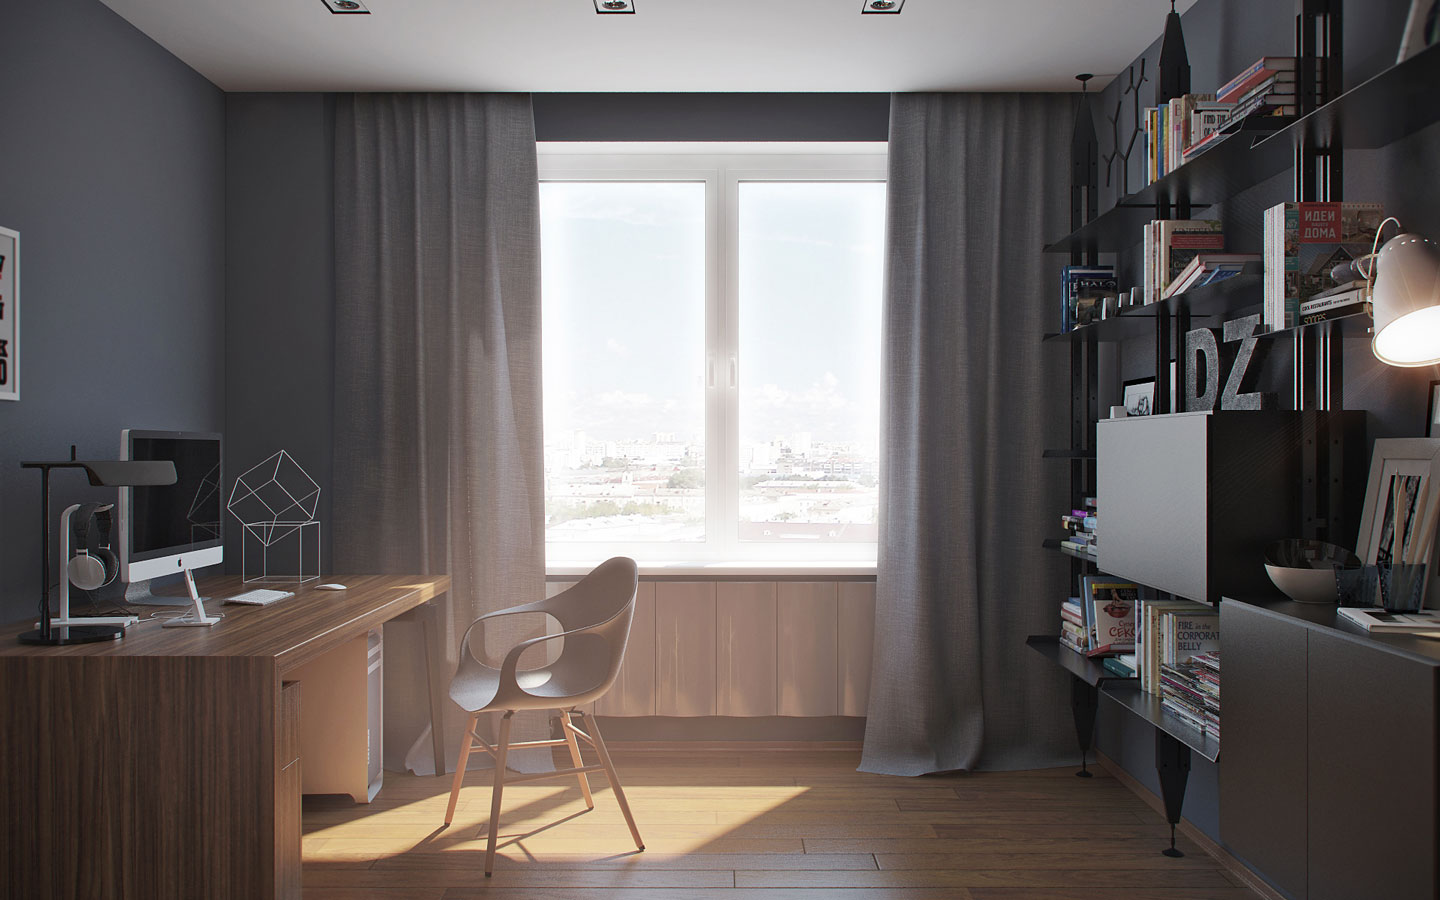 Dark Stylish Home Office Theme - 5 ideas for a one bedroom apartment with study includes floor plans